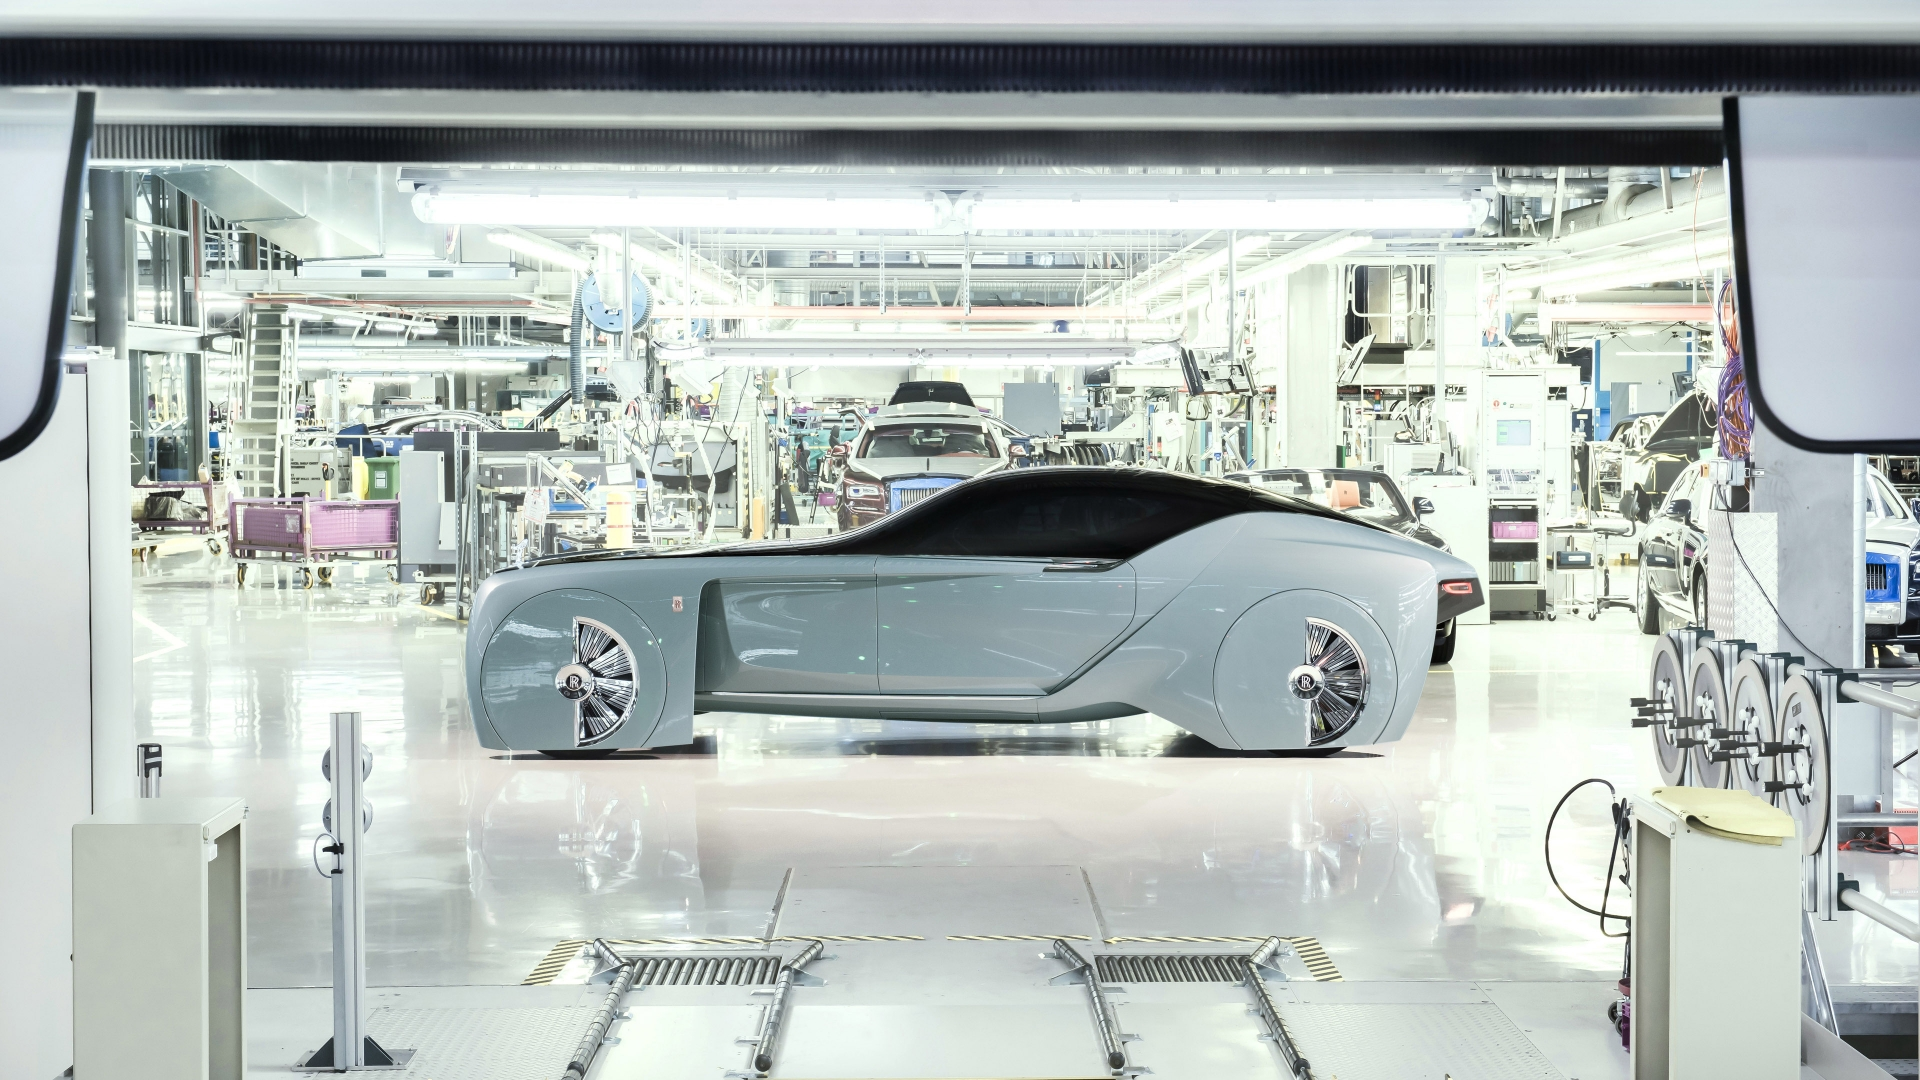 Rolls-Royce Vision Next 100 Concept 2016 - Photo 06 - Taille: 1920x1080